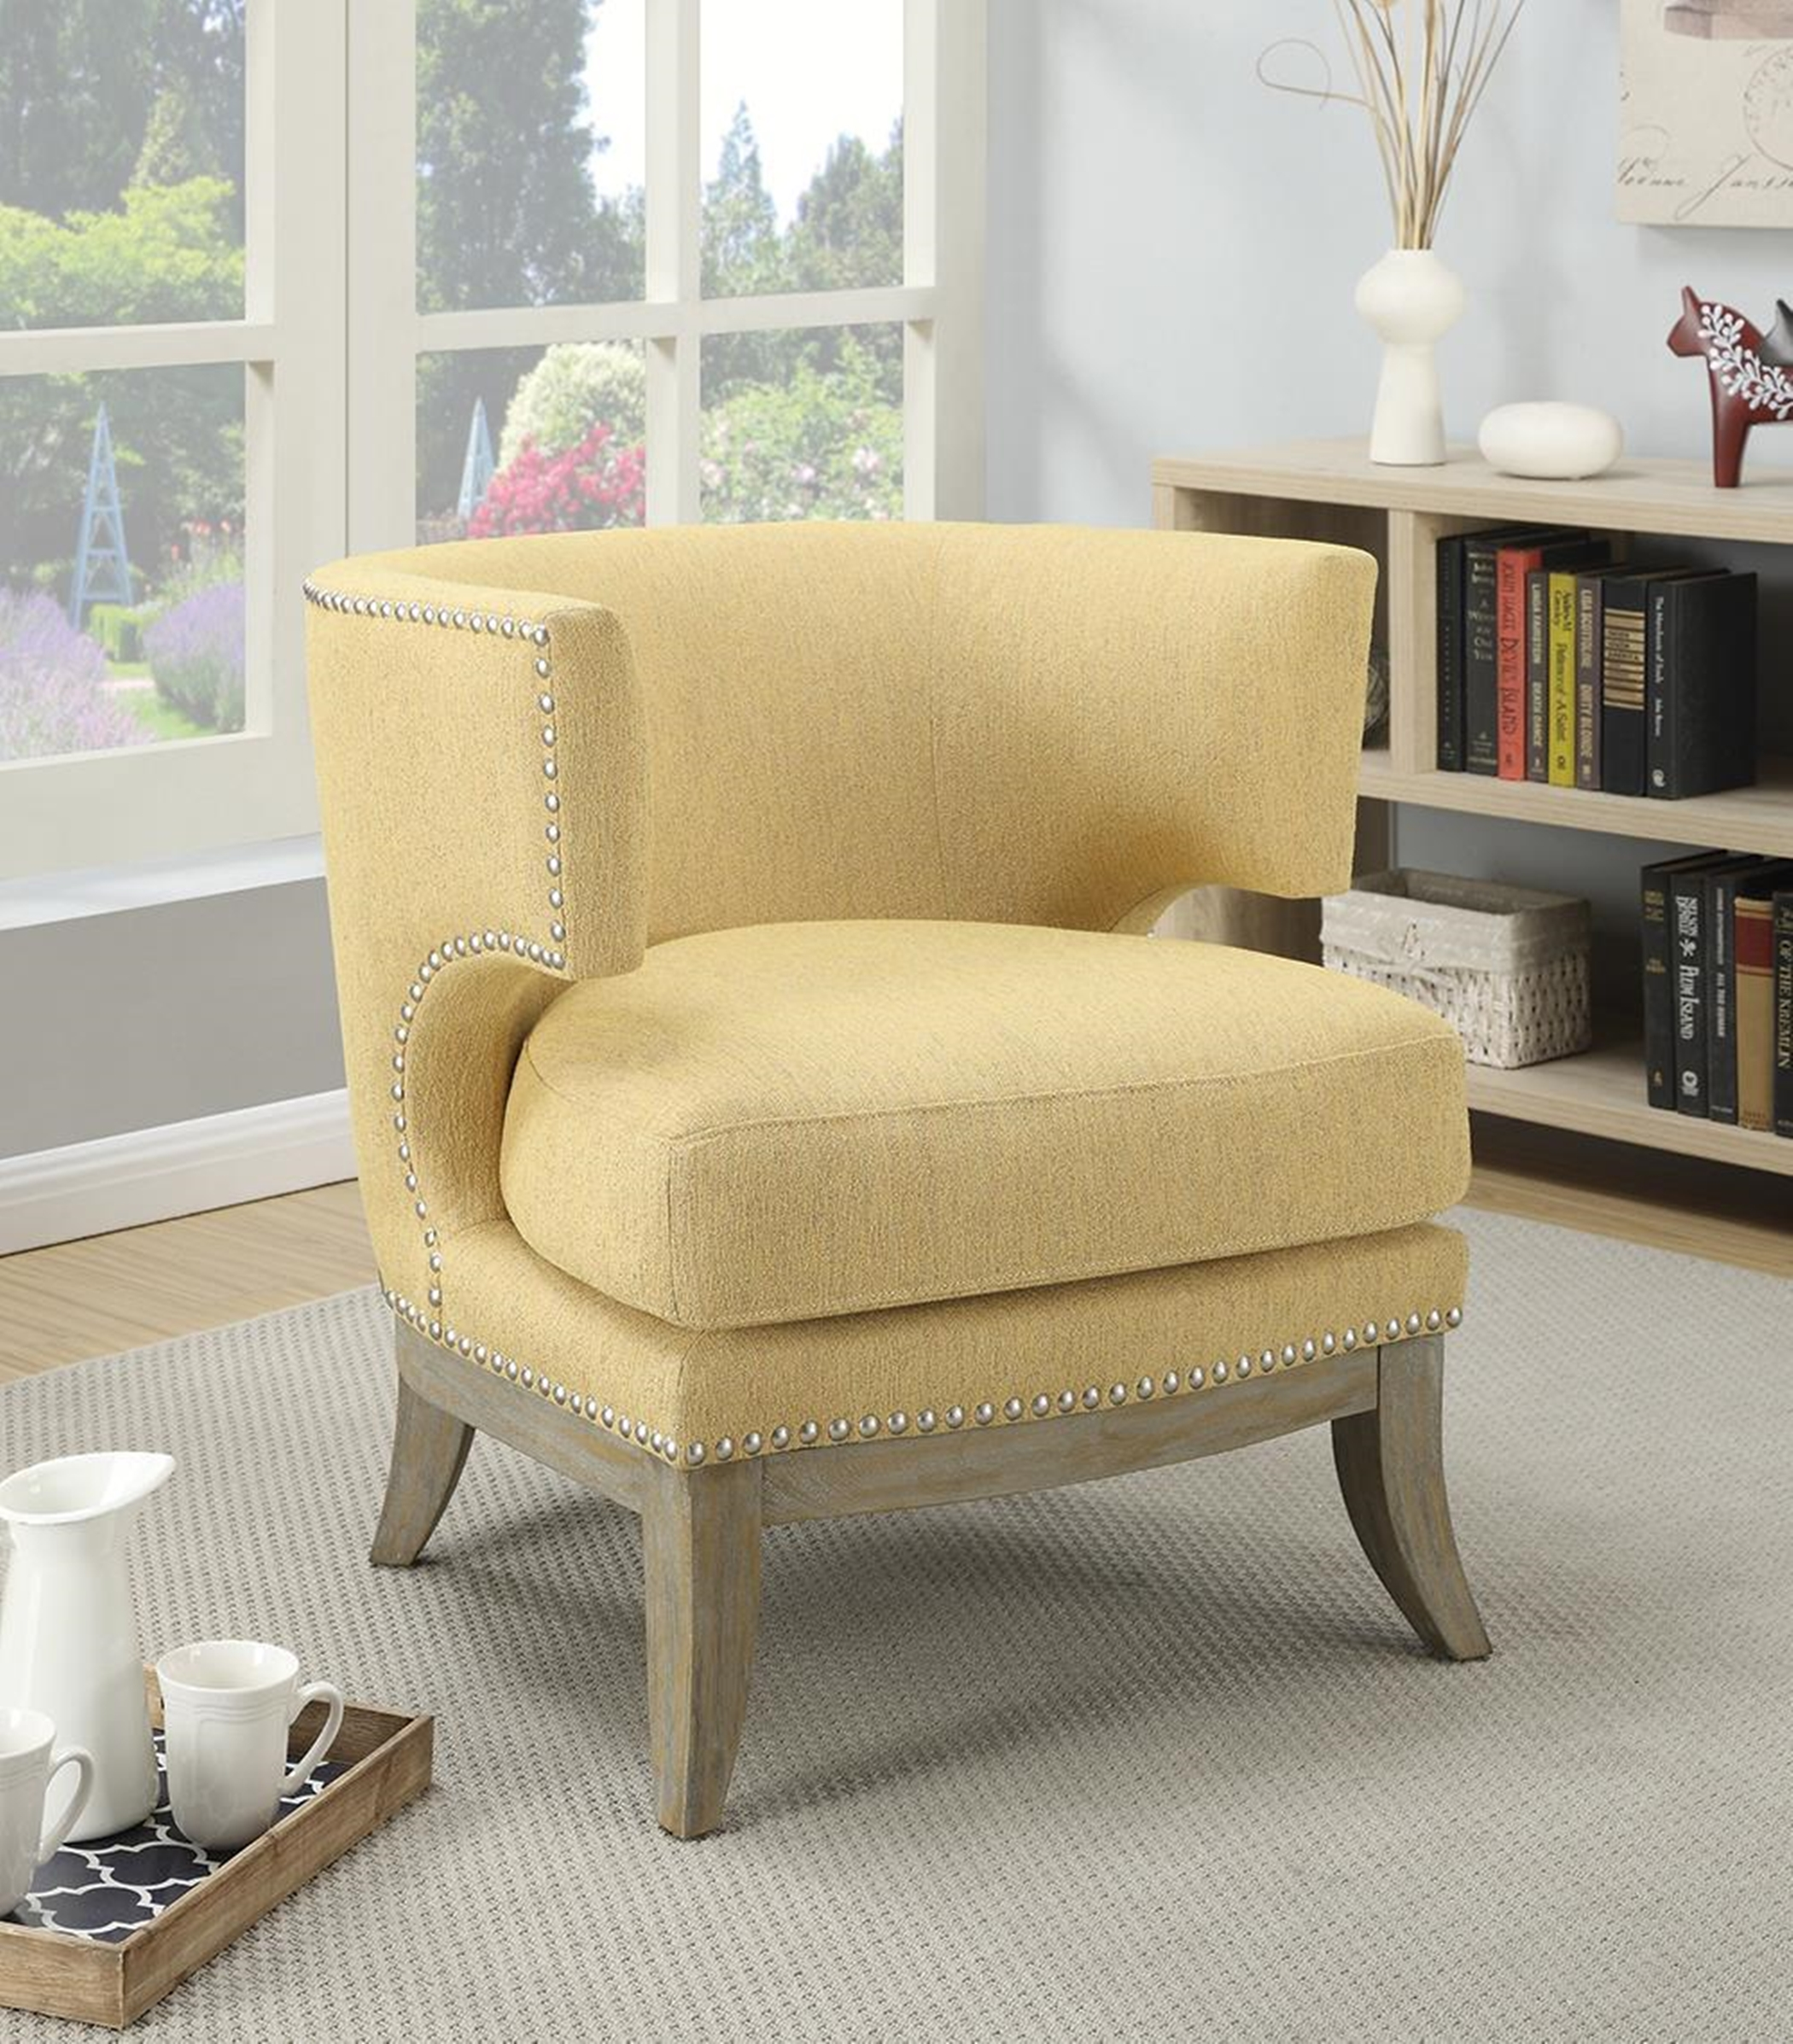 Bumblebee Yellow Exposed Wood Accent Chair